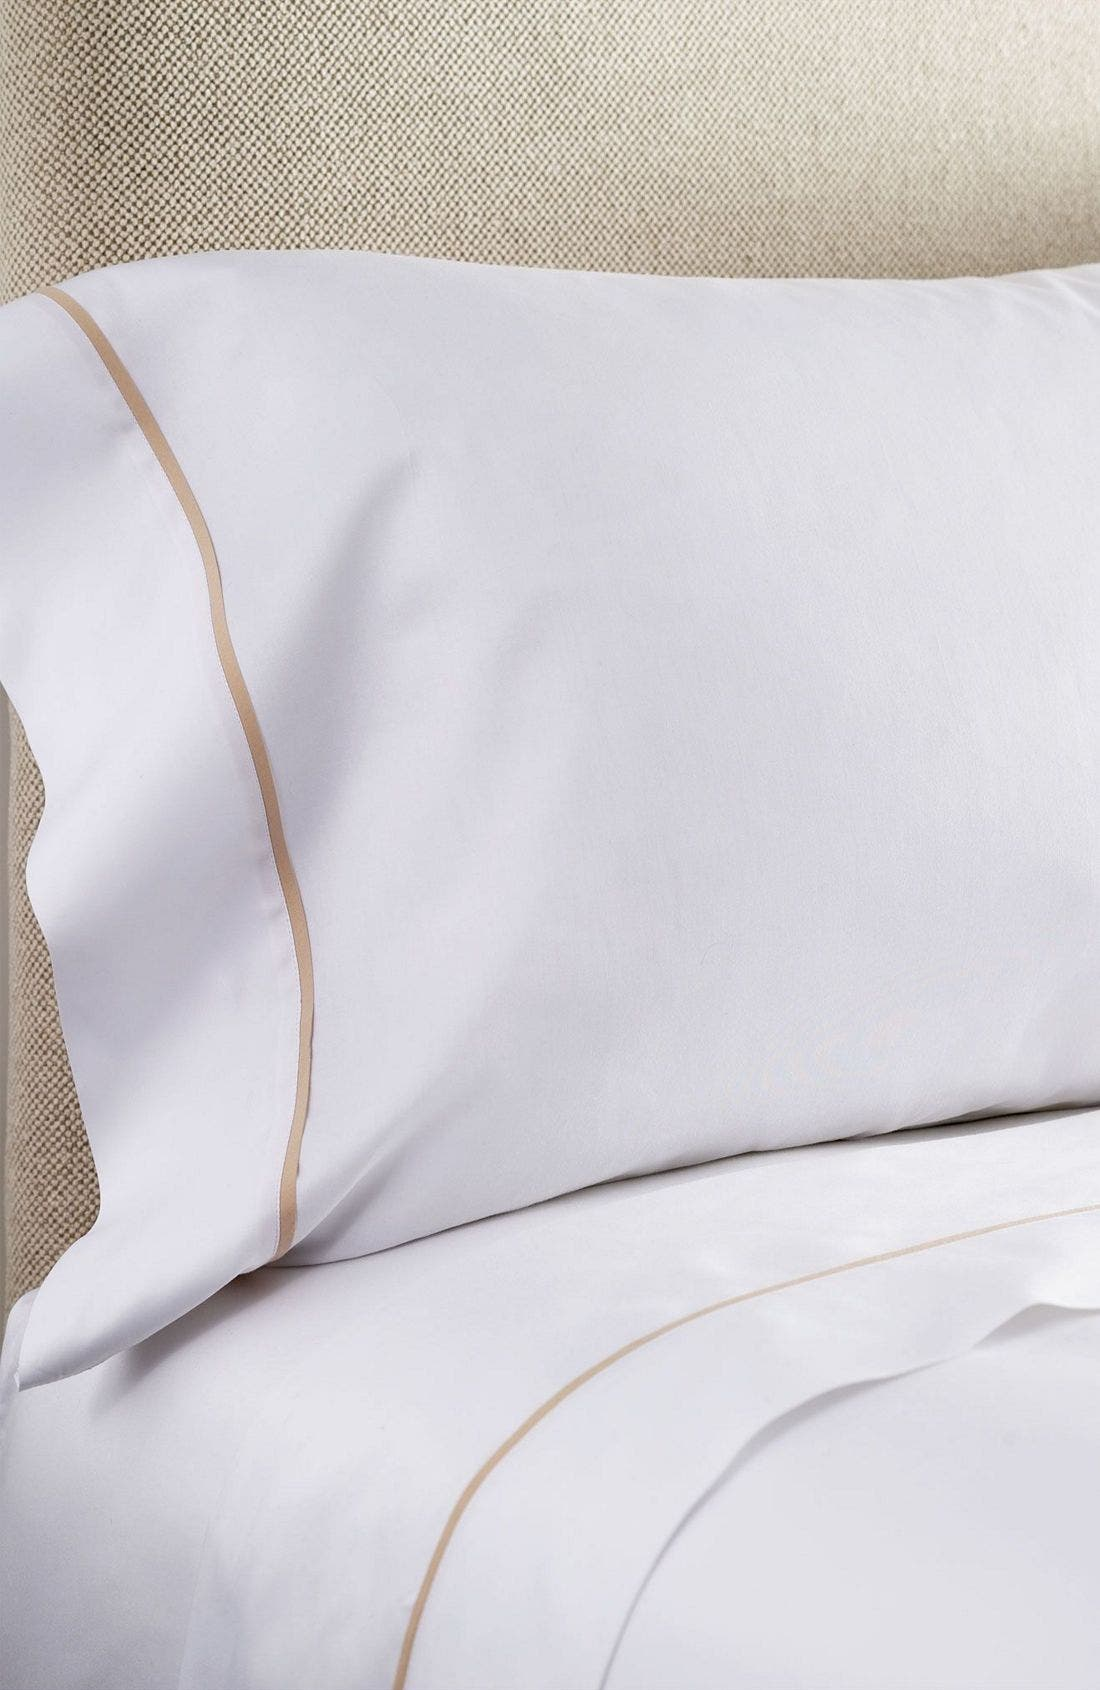 Main Image - Westin Heavenly Bed® Set of 2 300 Thread Count Egyptian Cotton Luxe Pillowcase